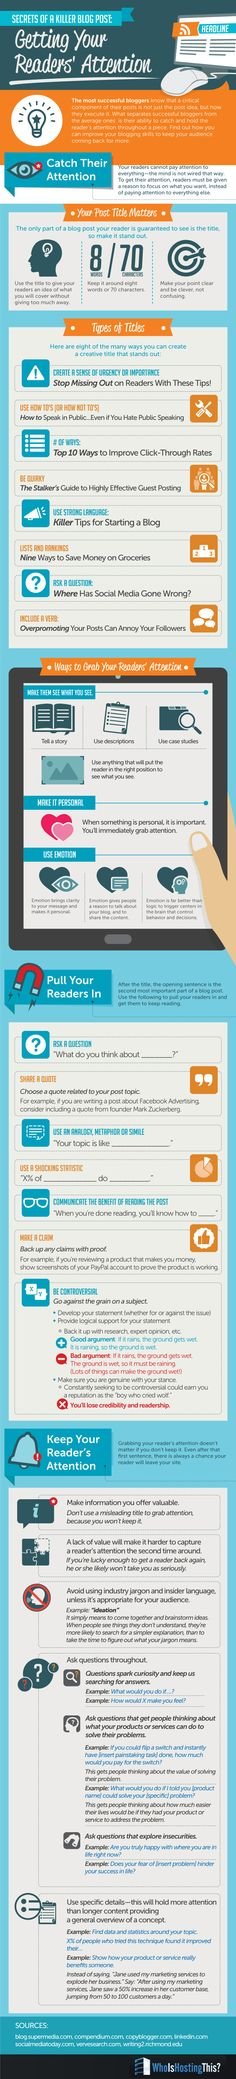 How to Write a Successful Blog Post 1 7+2 [Infographic] The Secrets of a Killer Blog Post